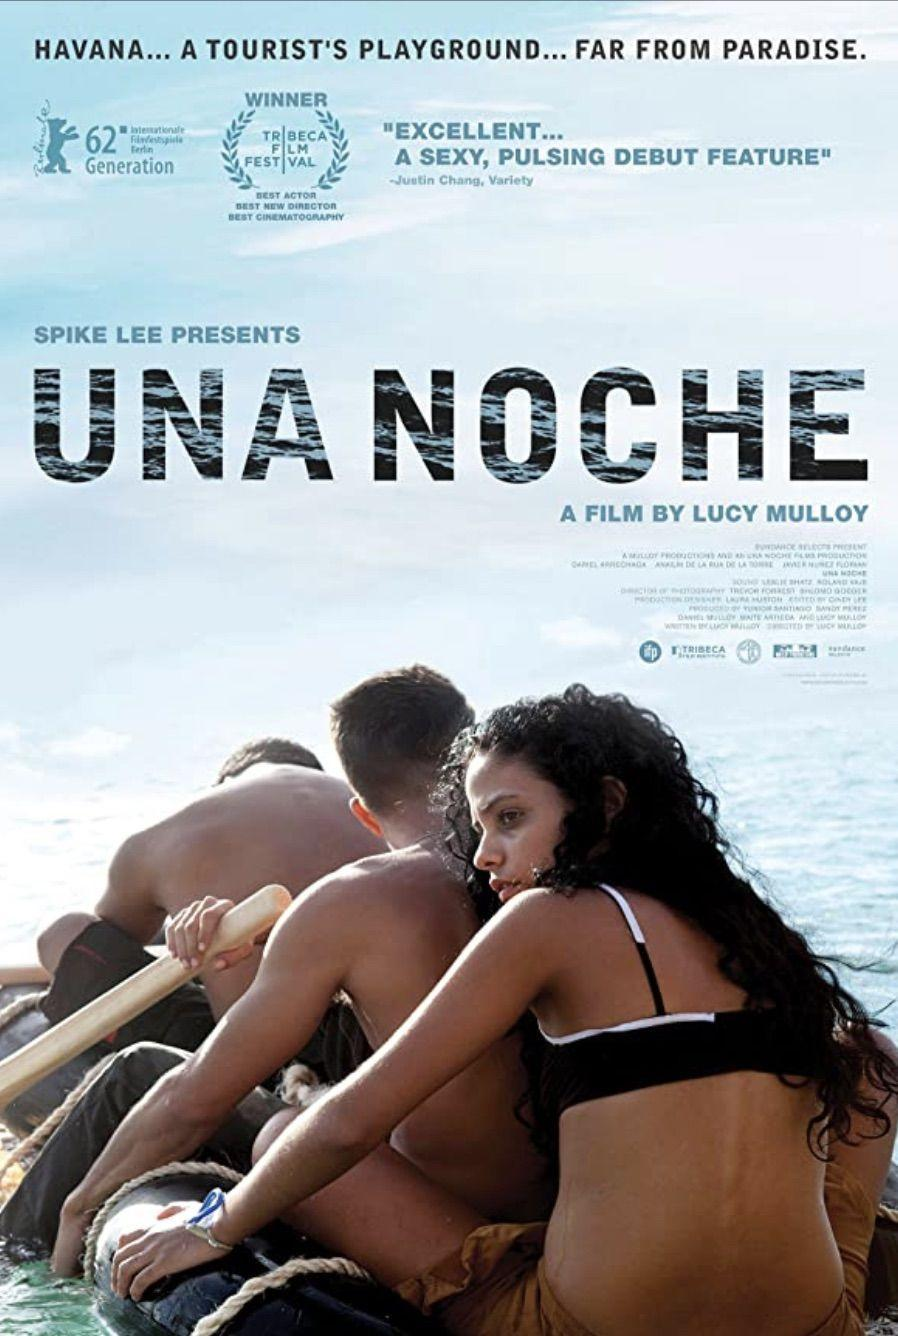 "<p>Set in Havana, Cuba, Raúl (<a href=""https://www.imdb.com/name/nm4884029/"" rel=""nofollow noopener"" target=""_blank"" data-ylk=""slk:Dariel Arrechaga"" class=""link rapid-noclick-resp""><strong>Dariel Arrechaga</strong></a>) dreams about leaving for Miami. When he's accused of assaulting a tourist, he convinces his best friend, Elio (<a href=""https://www.imdb.com/name/nm4884095/"" rel=""nofollow noopener"" target=""_blank"" data-ylk=""slk:Javier Nuñez Florián"" class=""link rapid-noclick-resp""><strong>Javier Nuñez Florián</strong></a>), to help him escape to the U.S. But Elio is torn between helping Raúl and staying behind with his twin sister, Lila (<strong><a href=""https://www.imdb.com/name/nm4884137/"" rel=""nofollow noopener"" target=""_blank"" data-ylk=""slk:Anailín de la Rúa de la Torre"" class=""link rapid-noclick-resp"">Anailín de la Rúa de la Torre</a></strong>). In the end, the three decide to make the 90-mile journey across the ocean together on a raft made of tires. But it doesn't go the way they planned.</p><p><a class=""link rapid-noclick-resp"" href=""https://www.amazon.com/Una-Noche-Dariel-Arrechaga/dp/B00ESB6RIQ?tag=syn-yahoo-20&ascsubtag=%5Bartid%7C10055.g.35564148%5Bsrc%7Cyahoo-us"" rel=""nofollow noopener"" target=""_blank"" data-ylk=""slk:STREAM NOW"">STREAM NOW</a></p>"